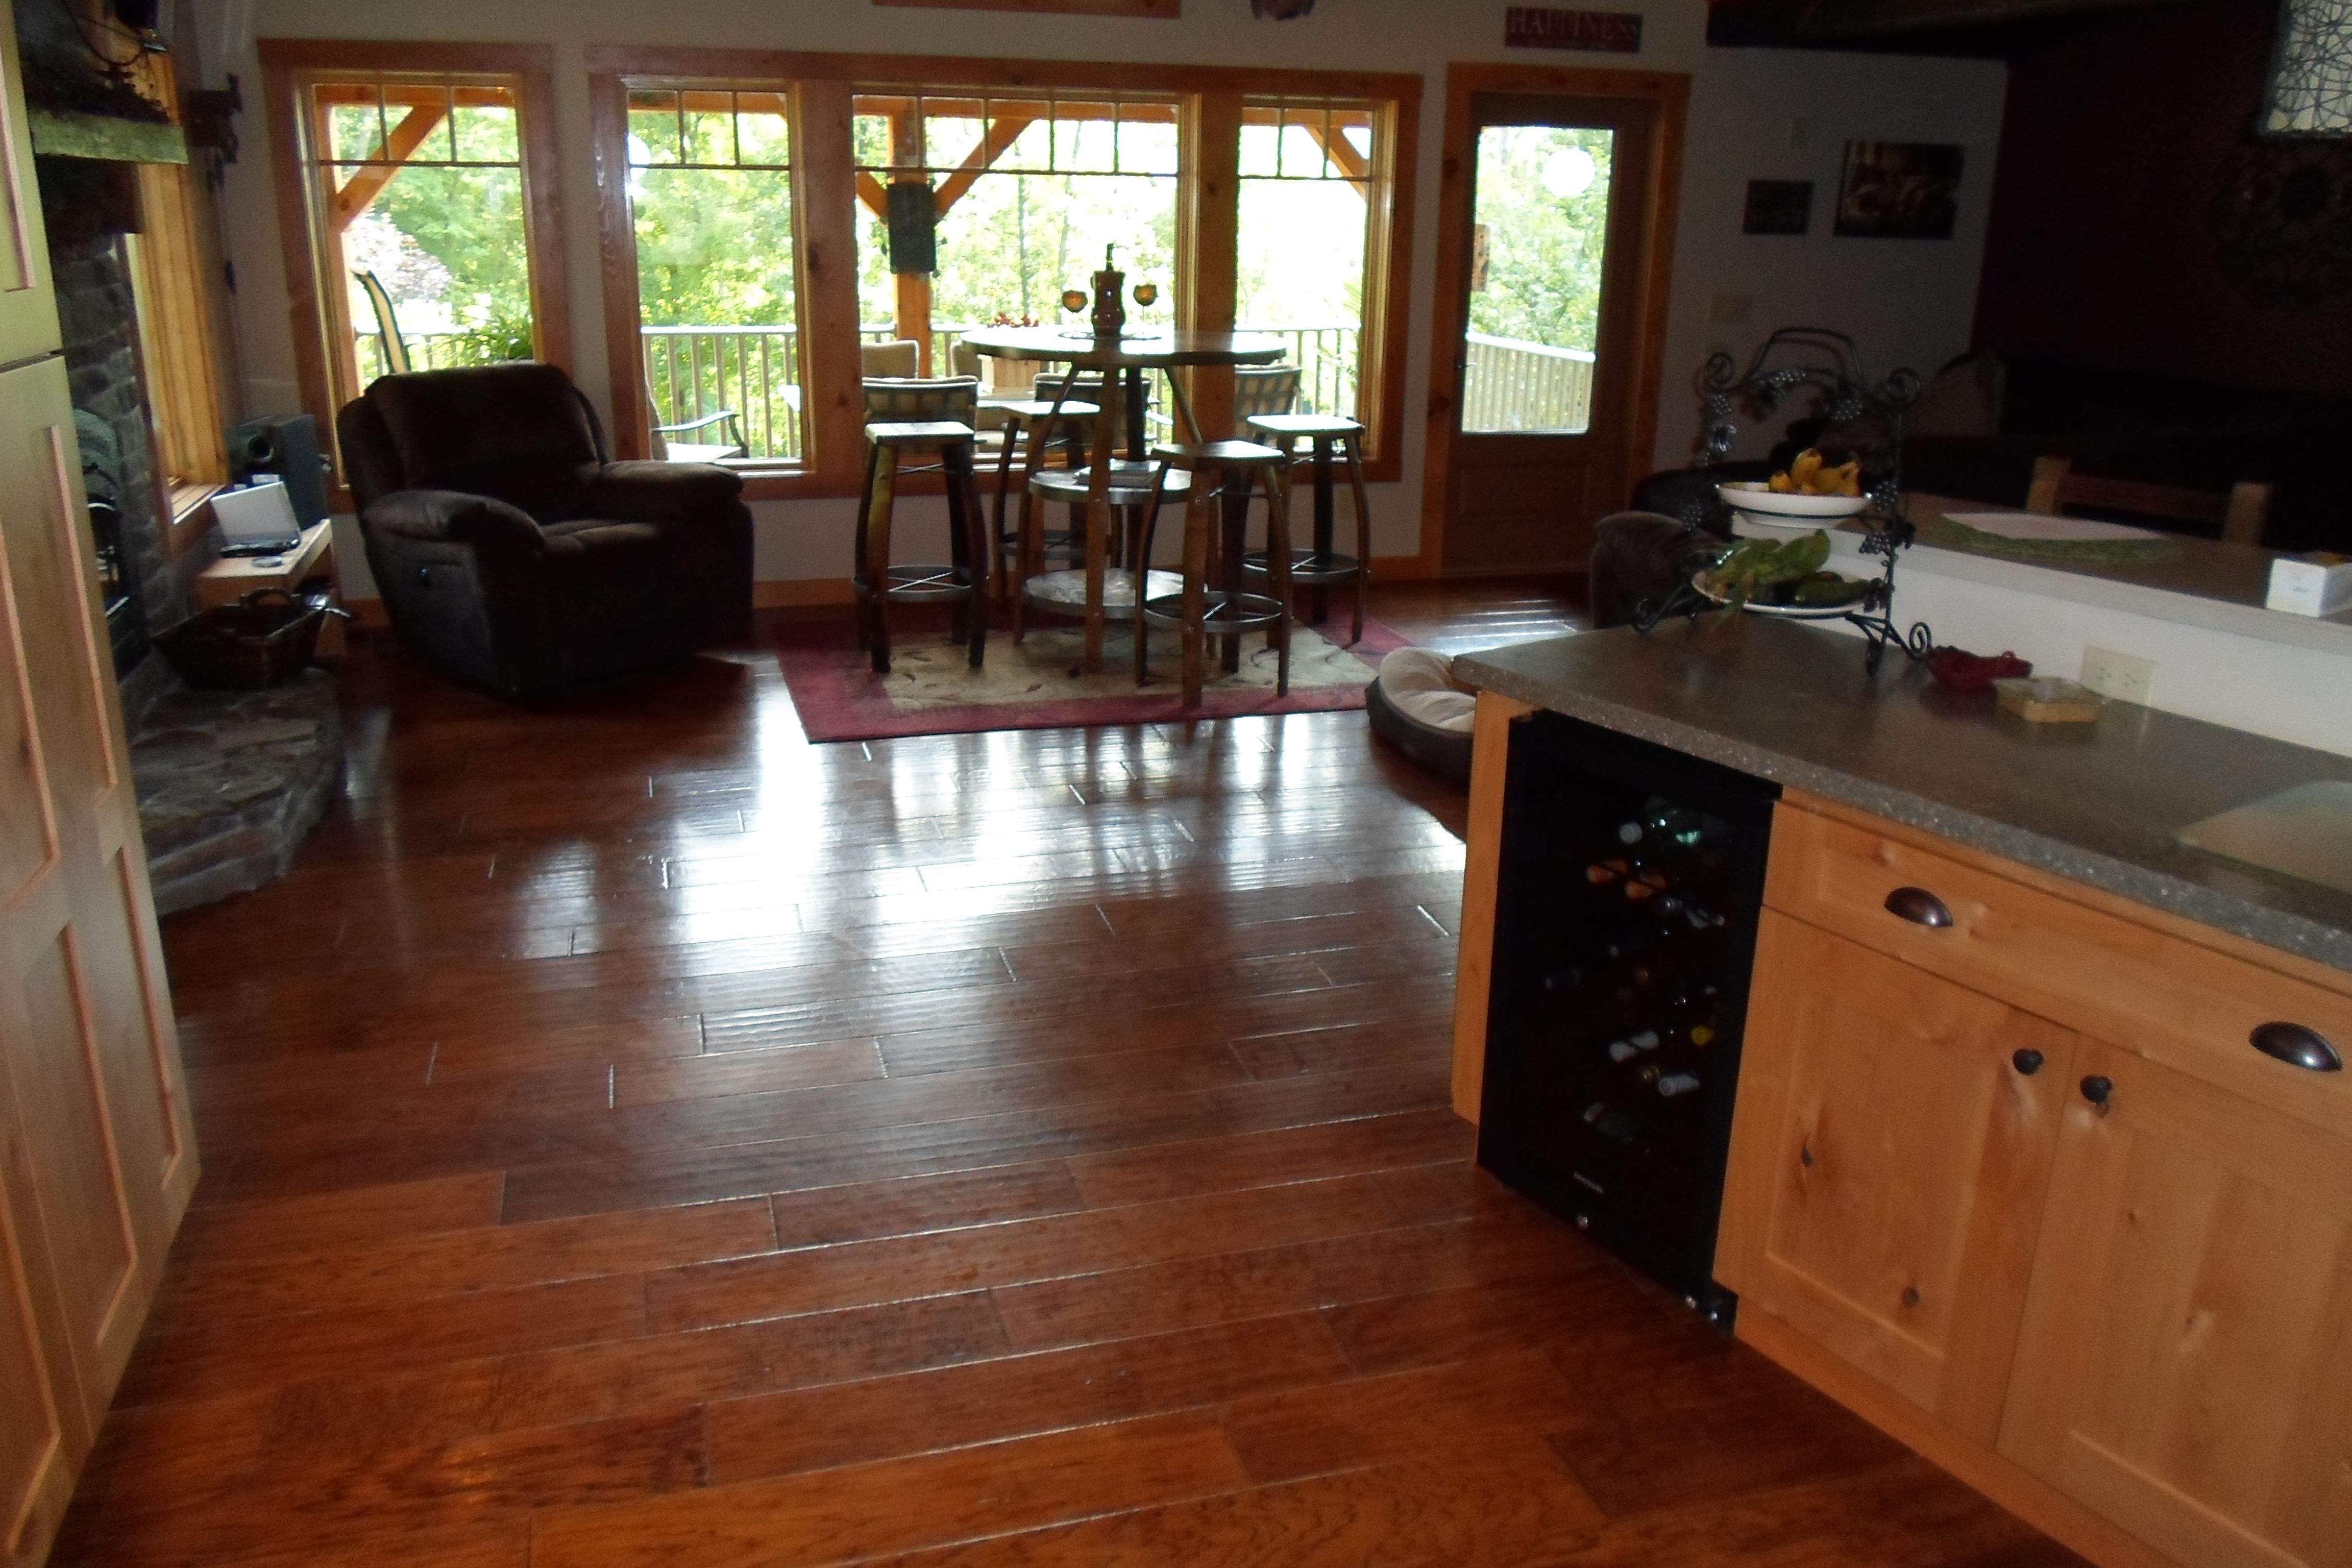 Hallmark hardwood collection chaparral hickory color tack room carpet tile hardwood laminate vinyl area rugs installation sales and service dailygadgetfo Image collections